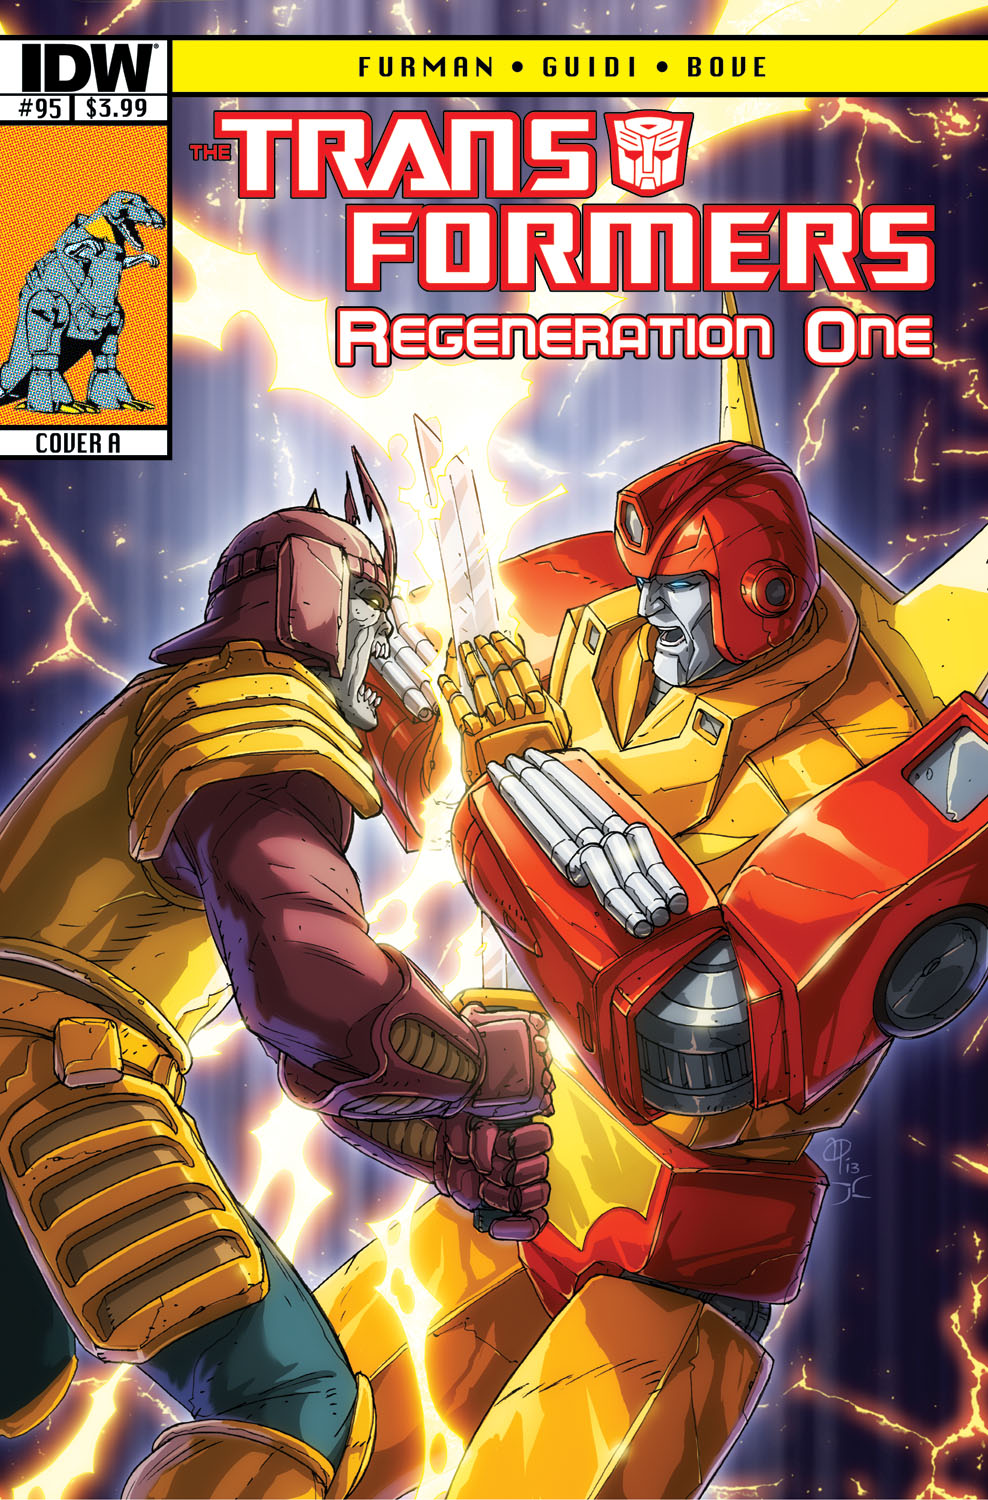 IDW October 2013 Transformers Solicitations - Dark Cybertron, Beast Hunters, Art of Prime